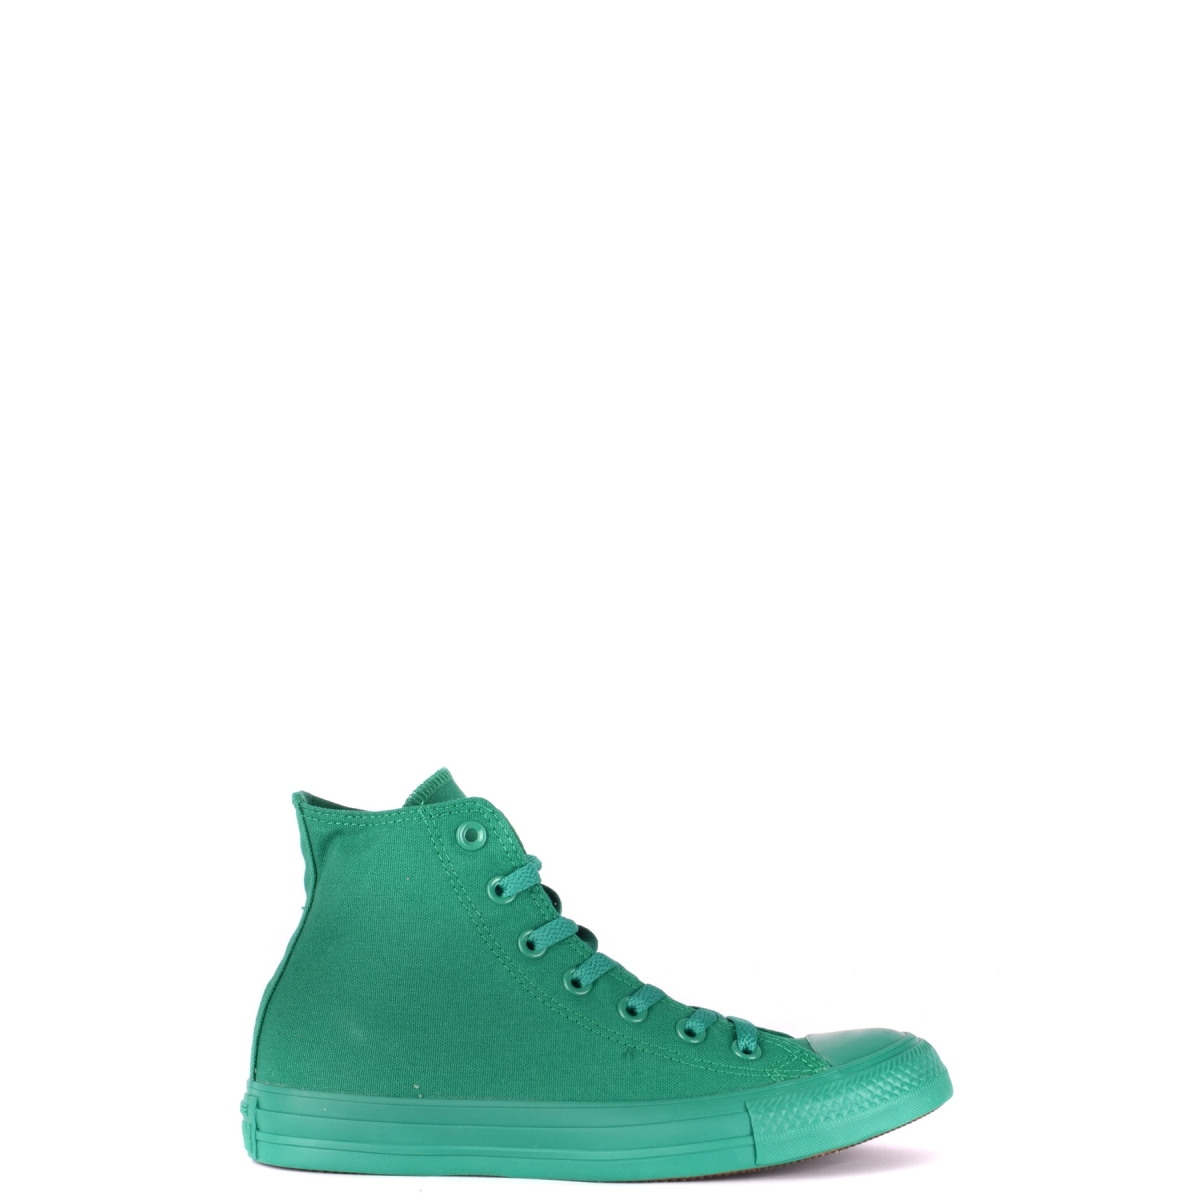 cheap for discount 1732e 44986 Sneakers Converse Converse Converse 35328IT -20% 8b5d08